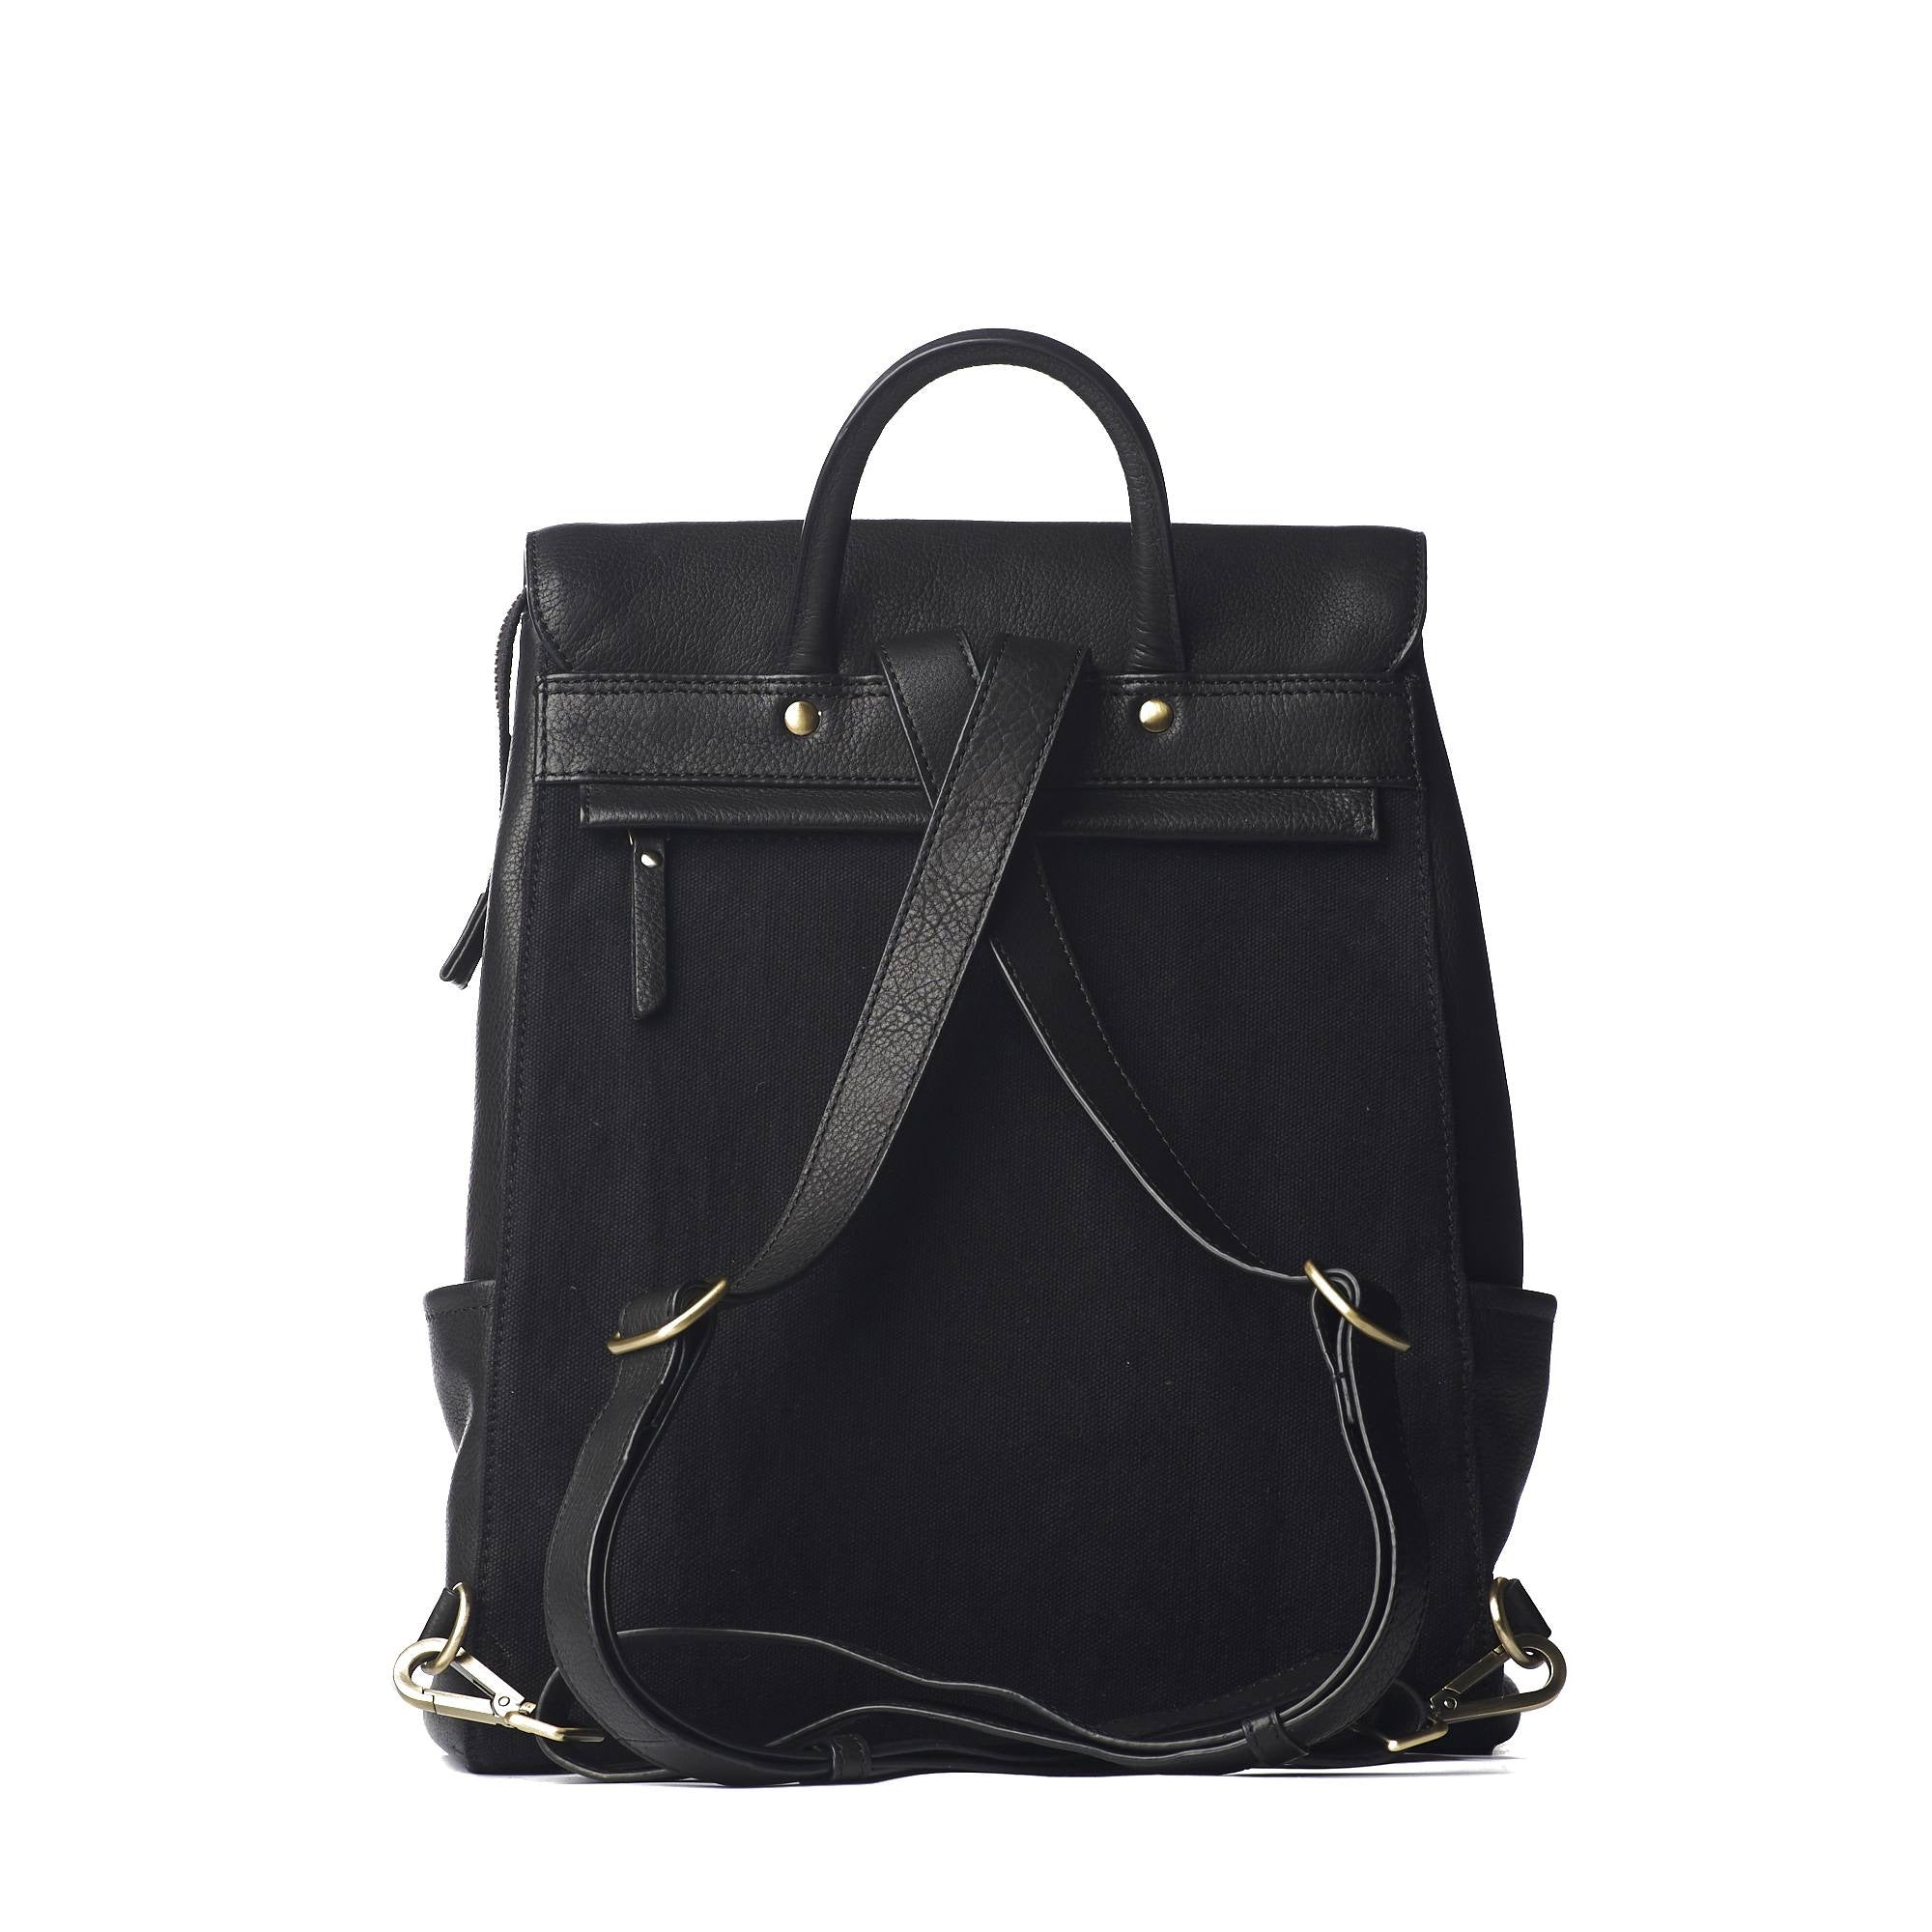 O My Bag jean backpack black soft grain leather